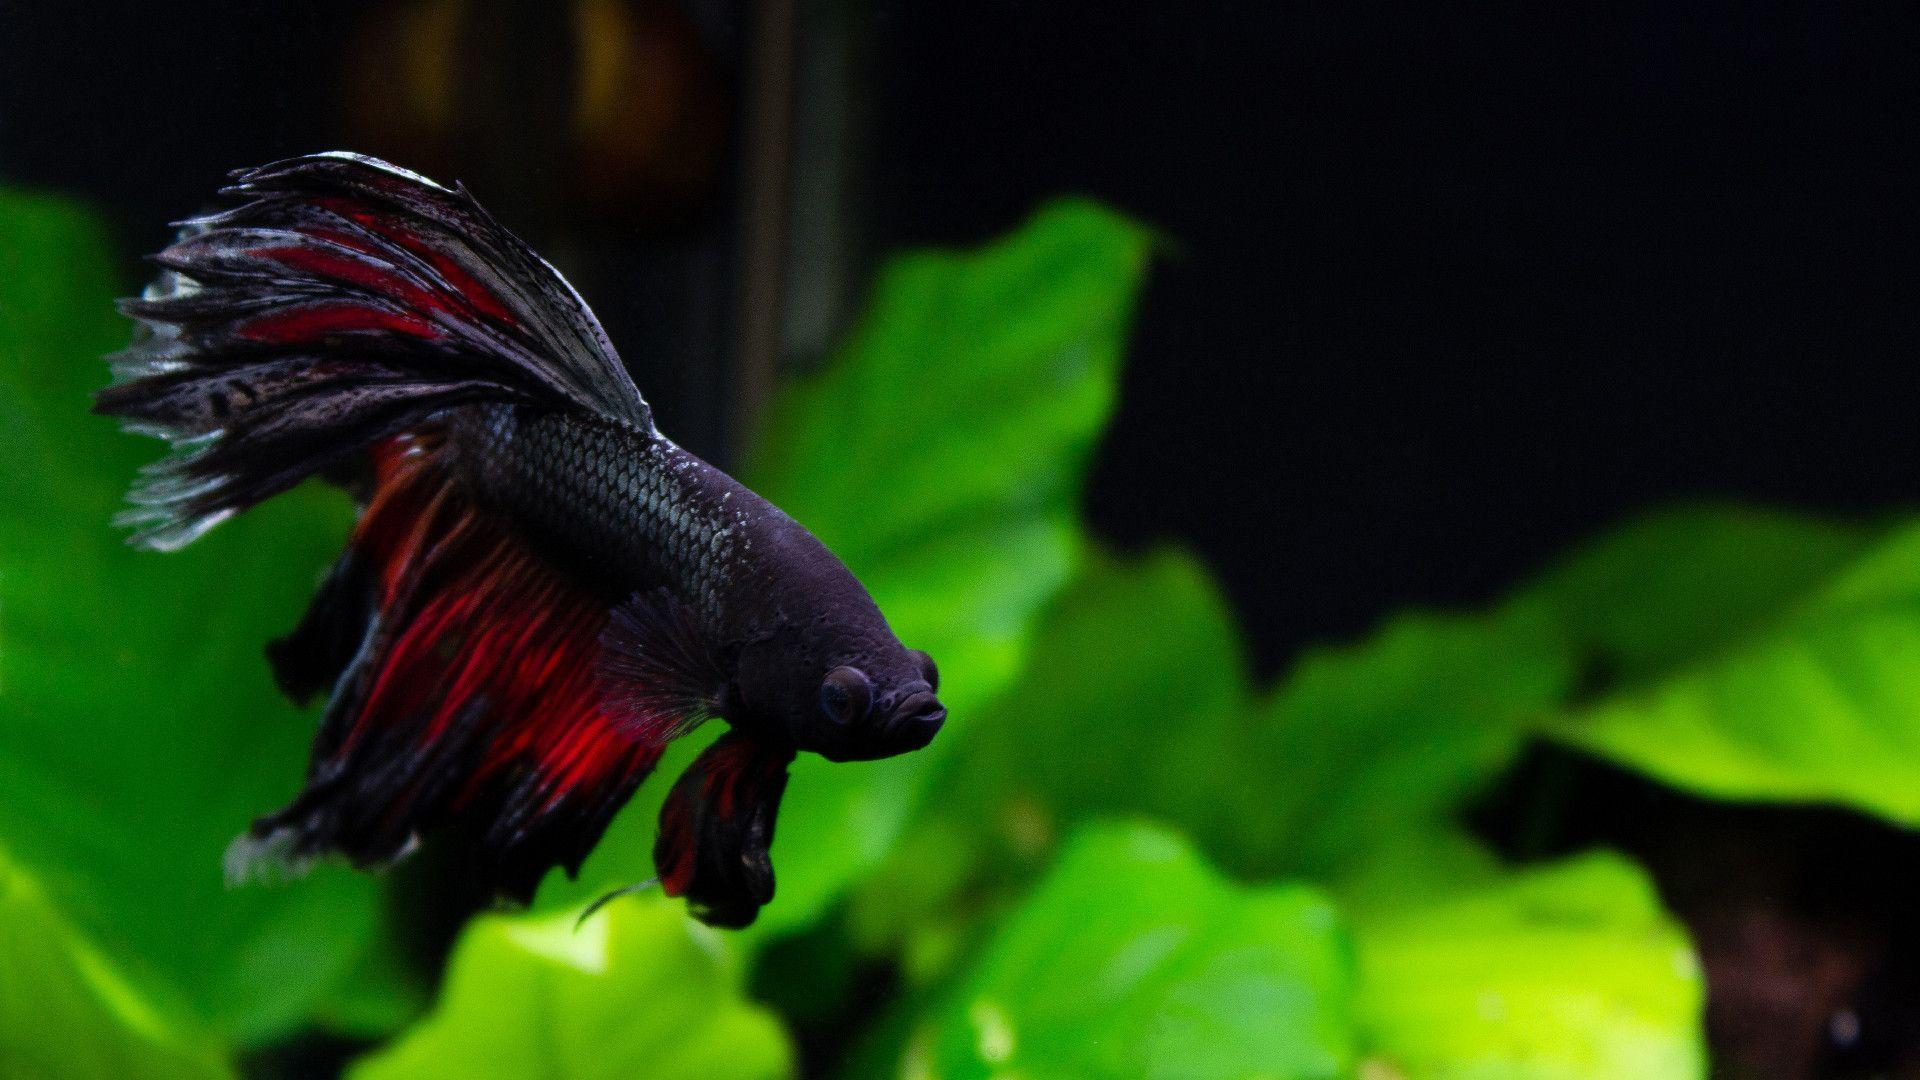 Betta Fish Wallpapers - Wallpaper Cave